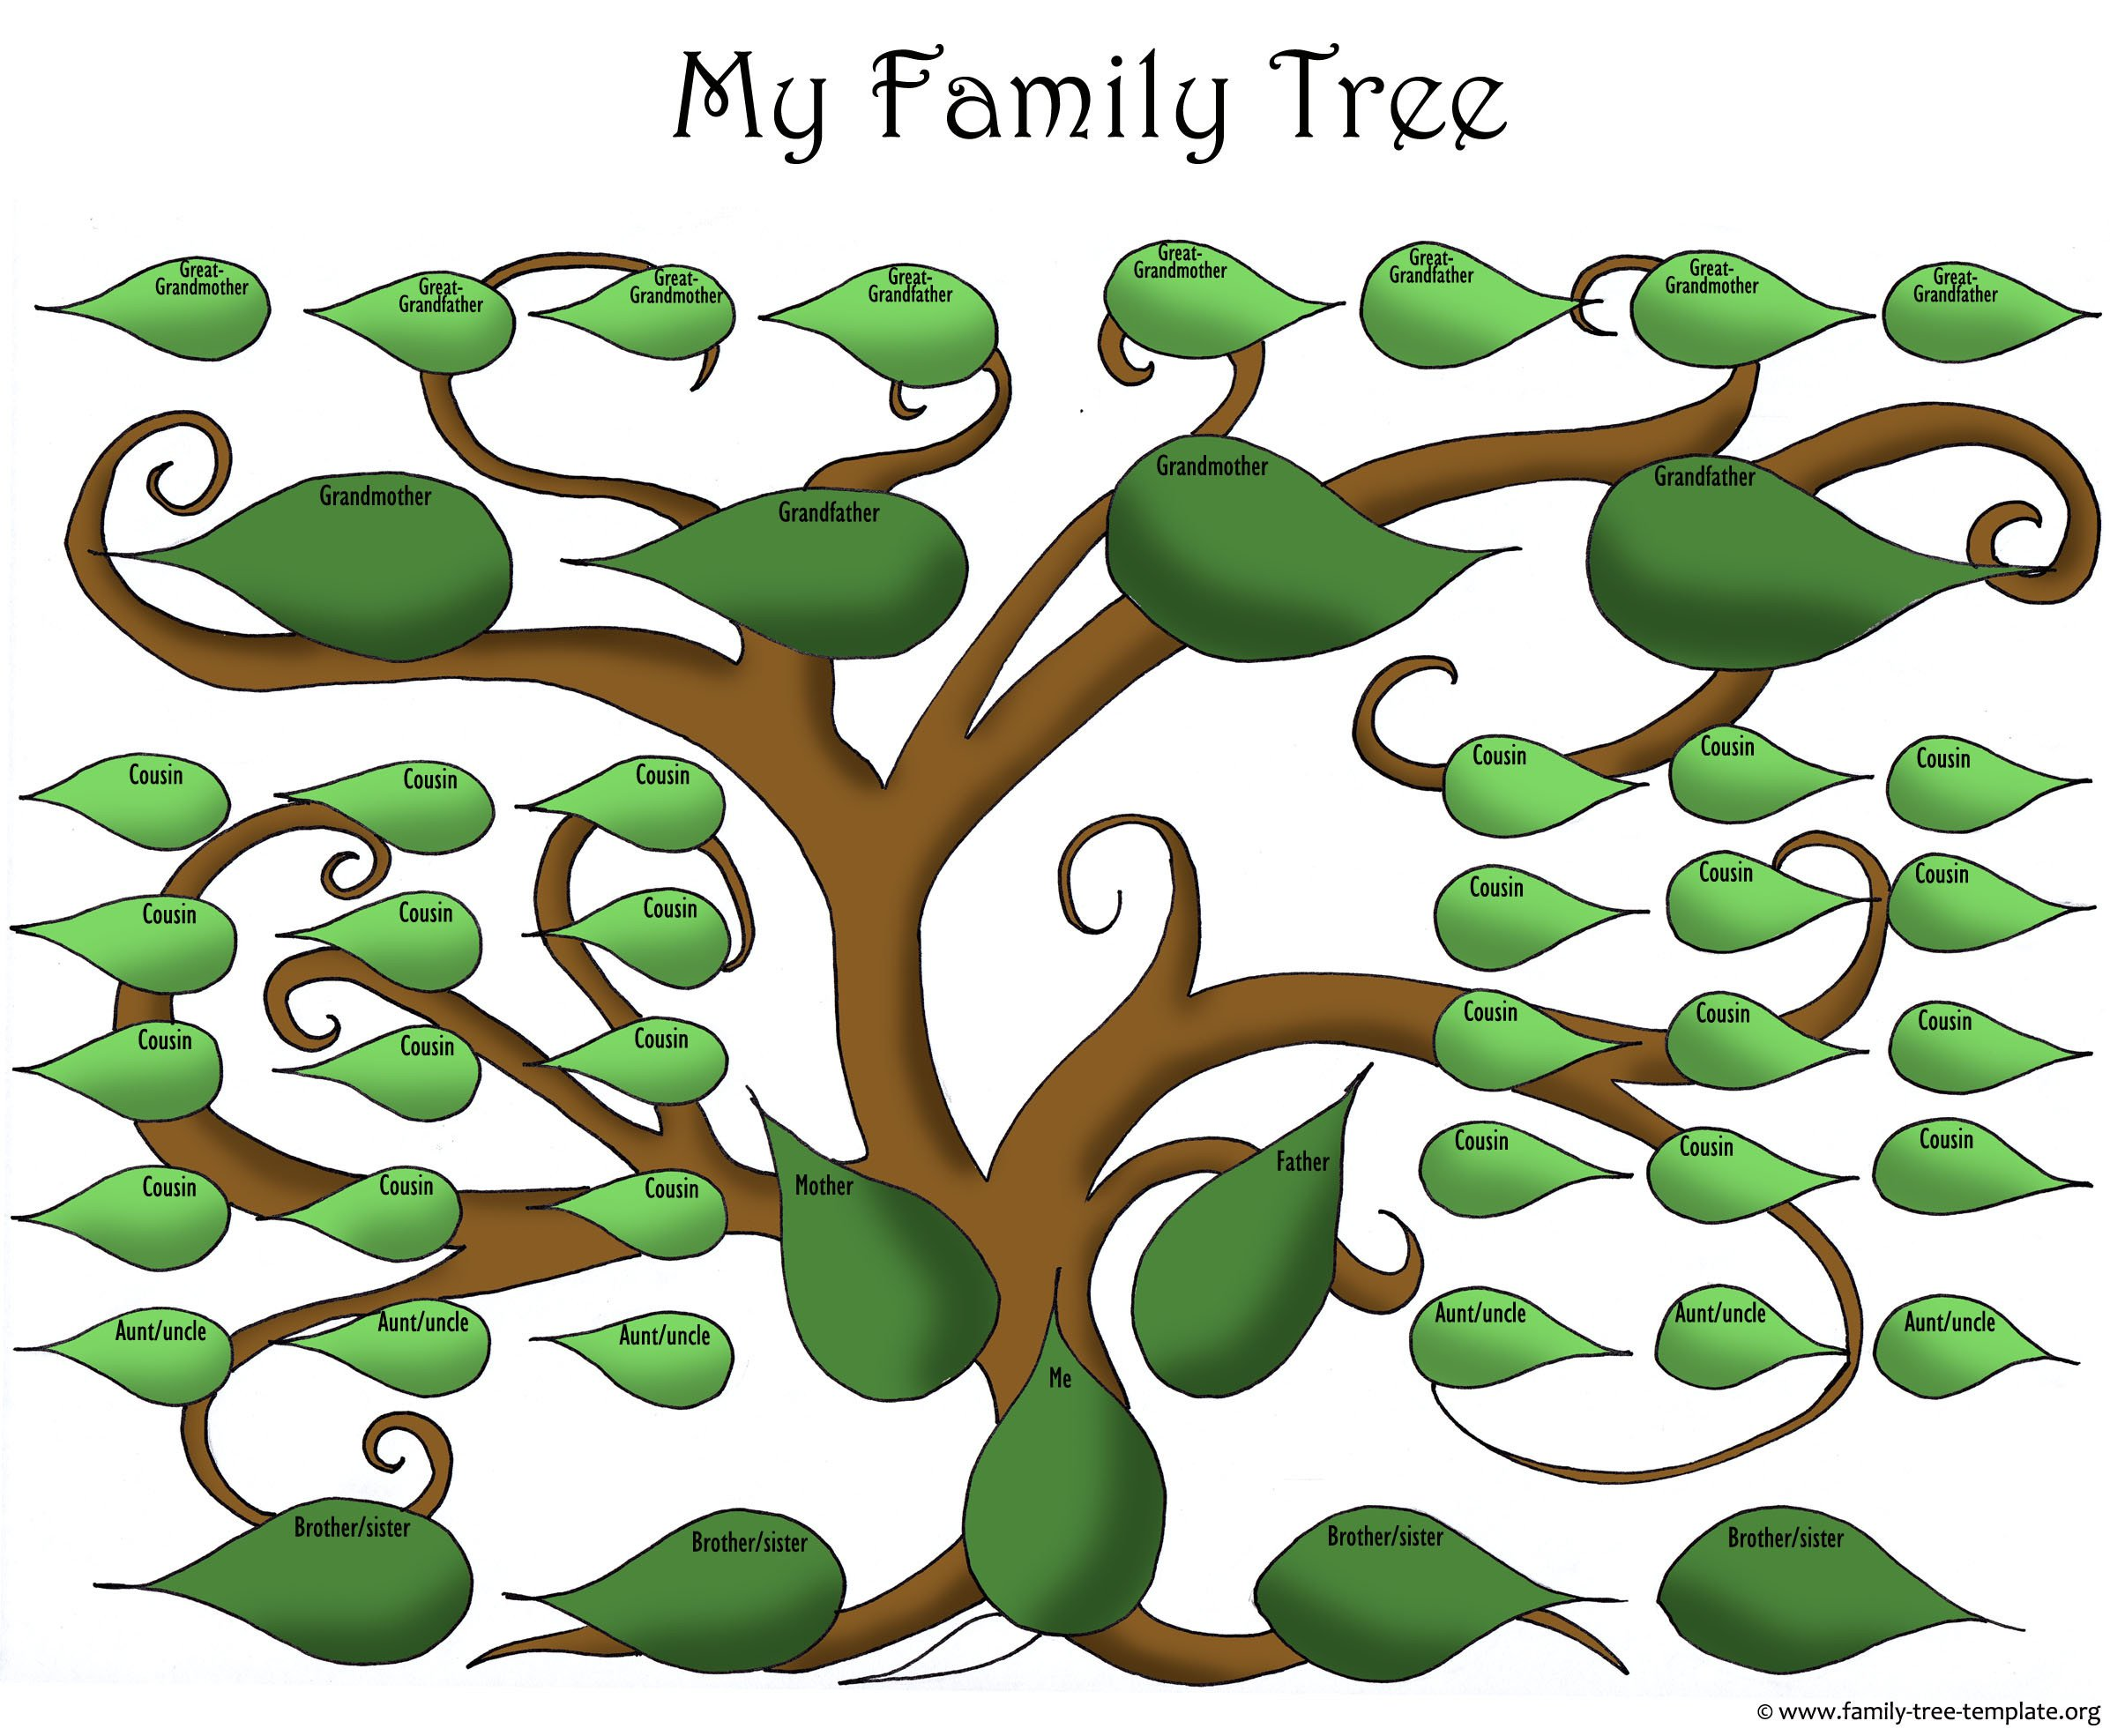 Large Family Tree Templates A Printable Blank Family Tree to Make Your Kids Genealogy